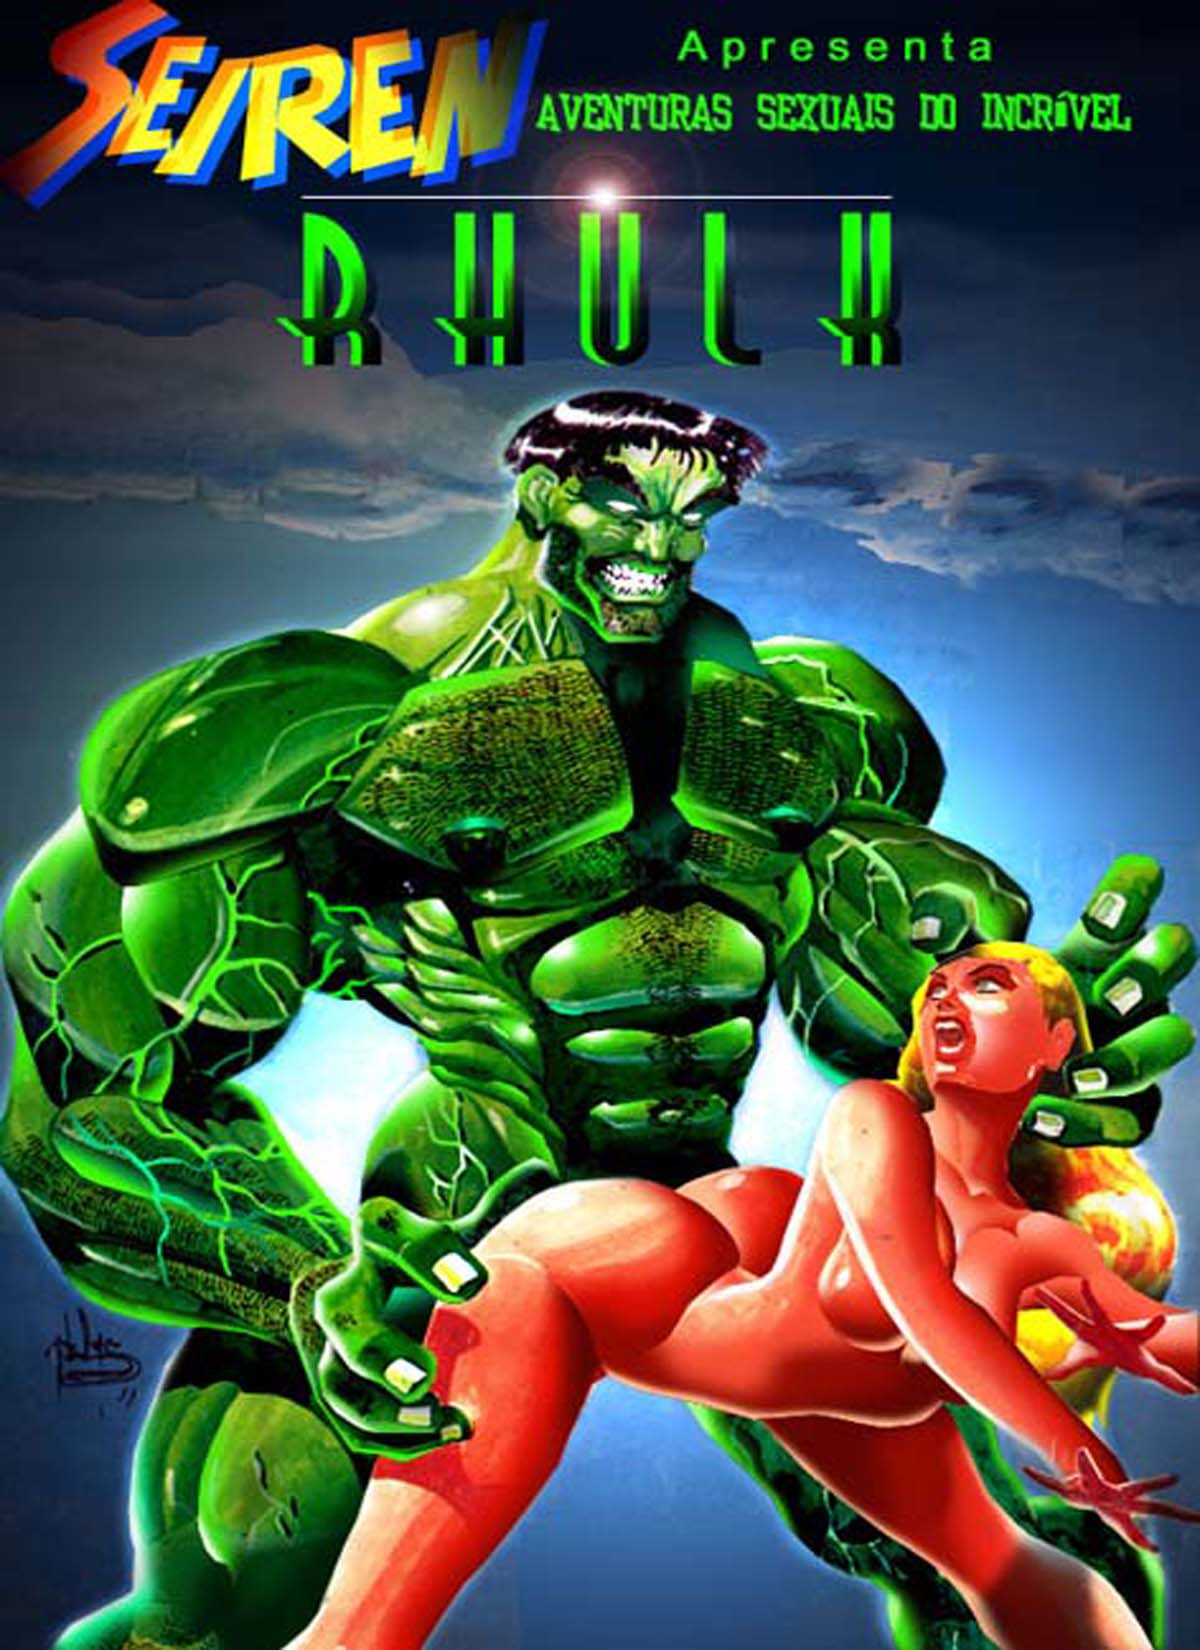 As Aventuras Sexuais Do Incrivel Rhulk- Seiren Br_Page_01_Image_0001